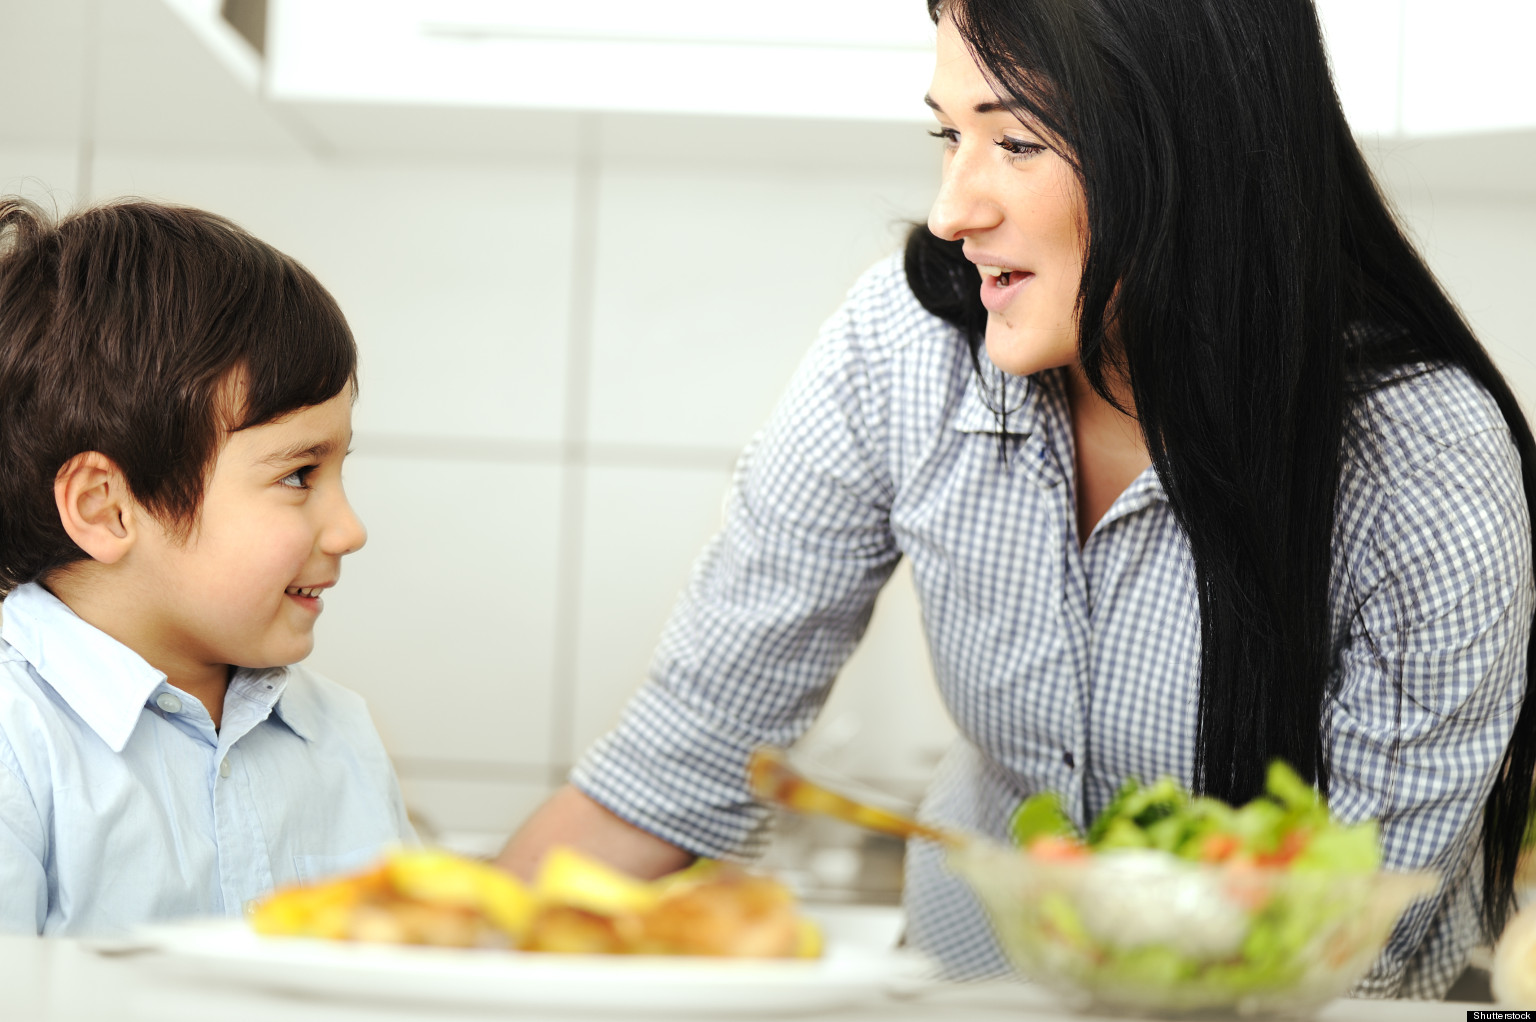 Hispanic Mothers Have Difficulty Adapting To U.S. Food Culture ...